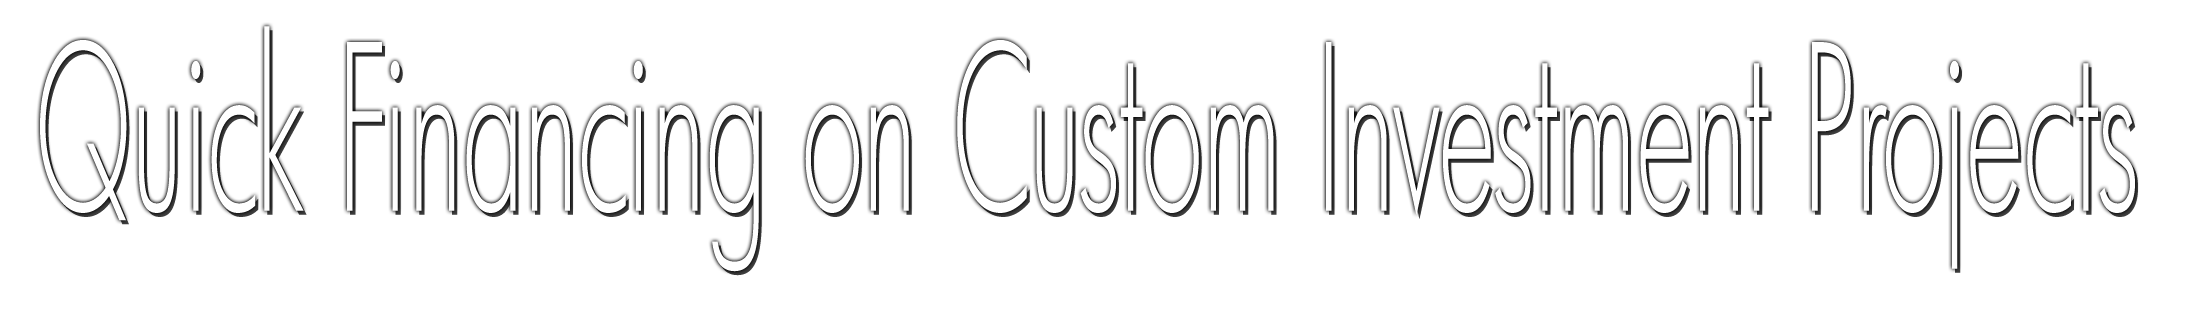 quick-financing-custom